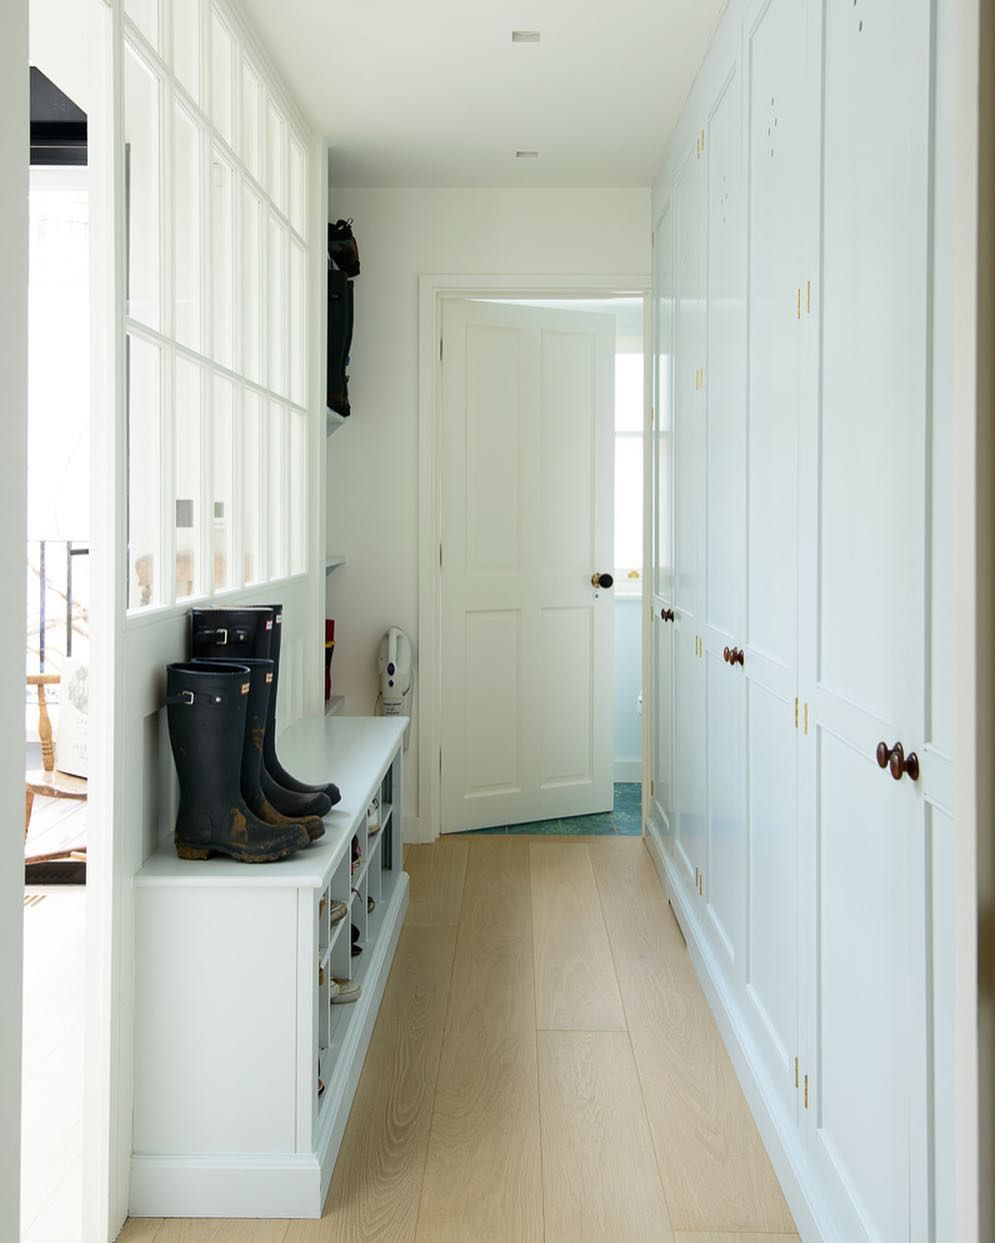 Devol Kitchens On Instagram Classic English Cupboards Are Not Just For Your Kitchen These Customers Had A Lot Of Coats And Bo Devol Kitchens Devol Boot Room